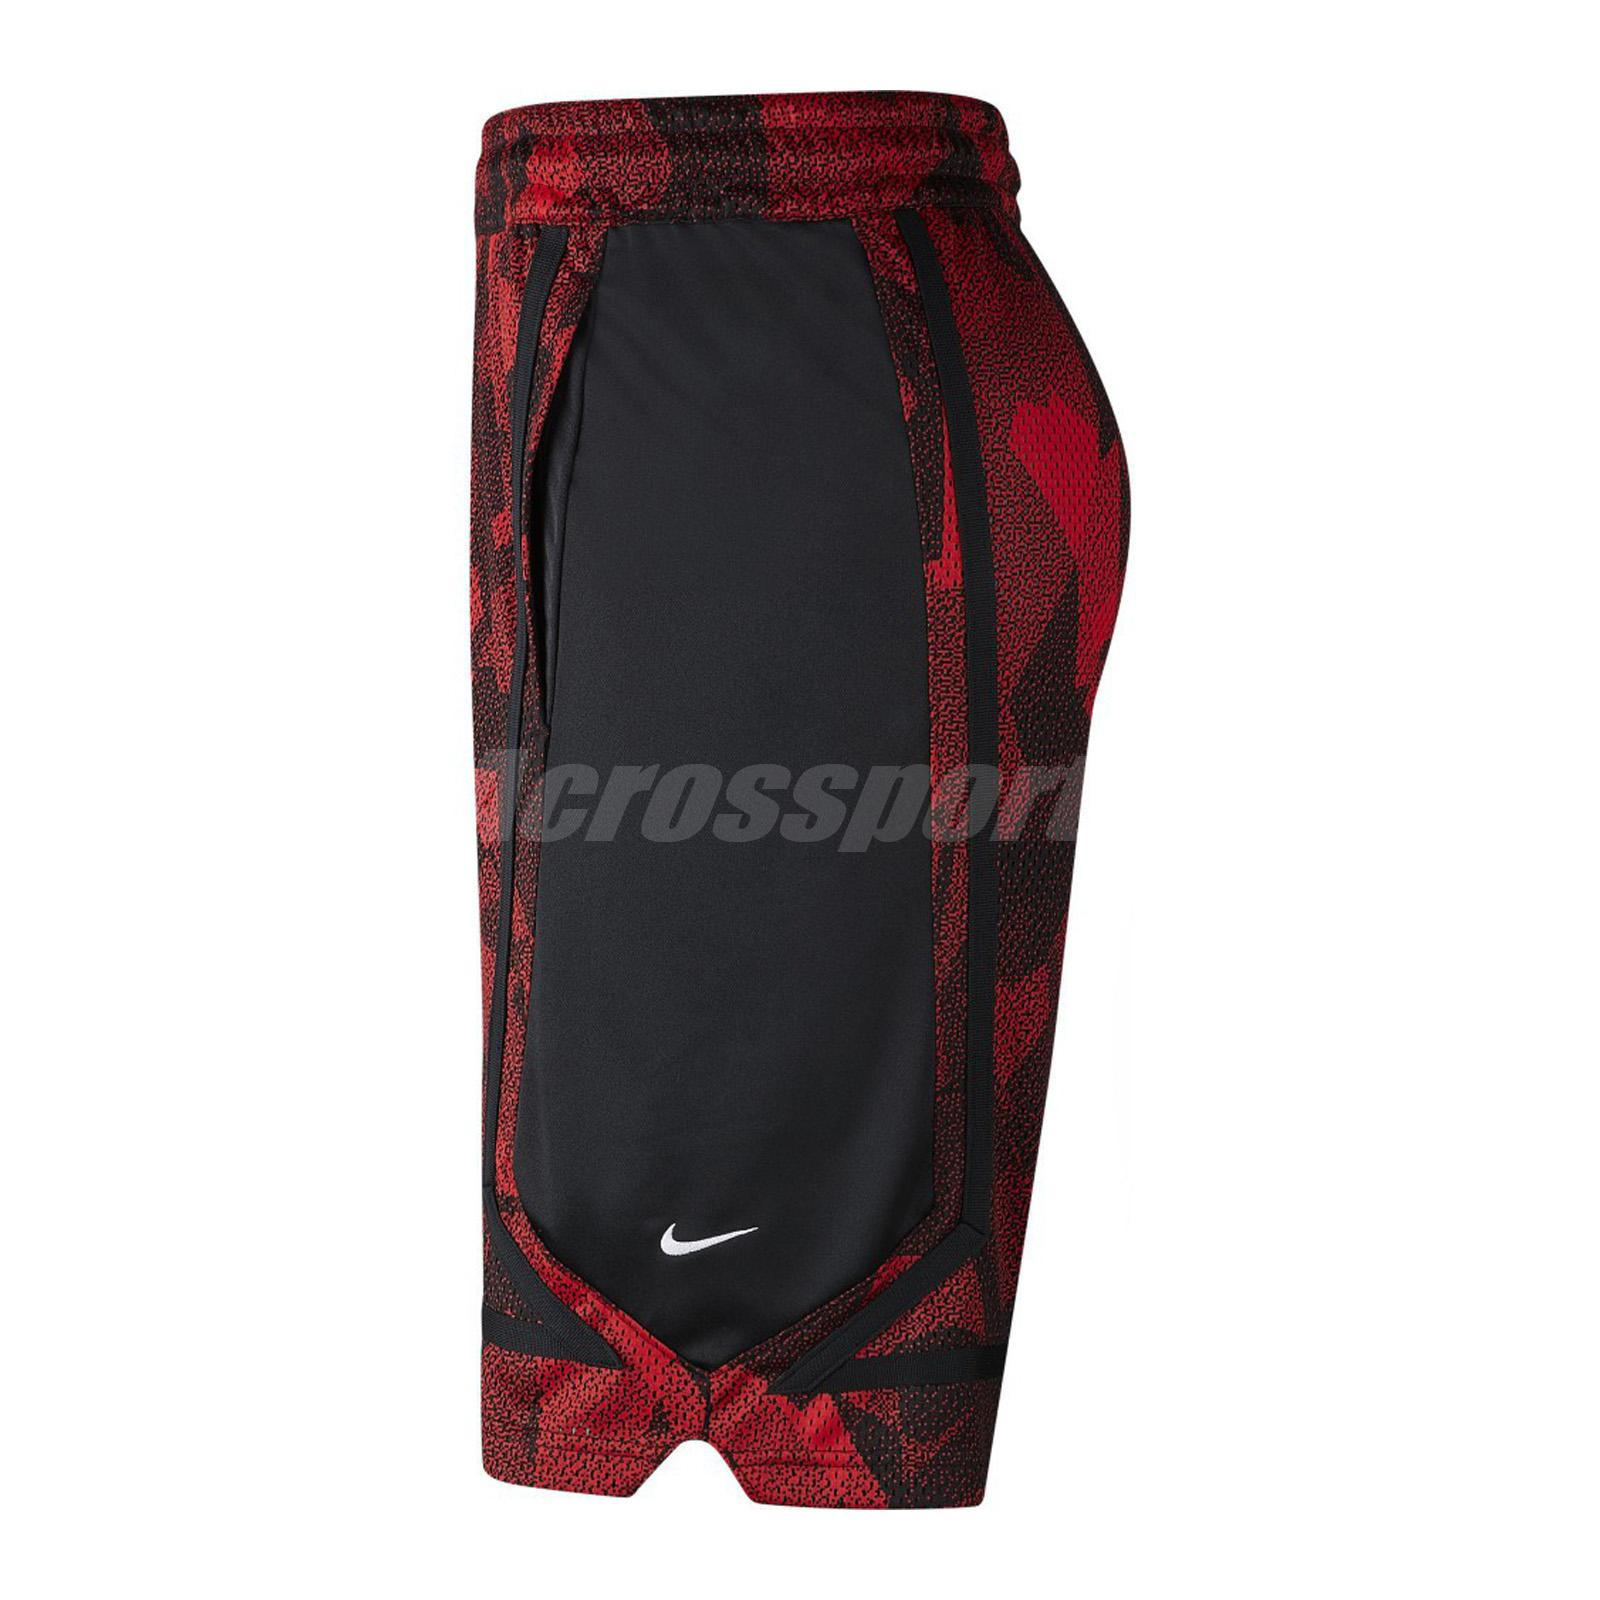 8a5164e011a6 Nike Kyrie Dri-FIT Elite Shorts Irving Uncle Drew Basketball Red ...